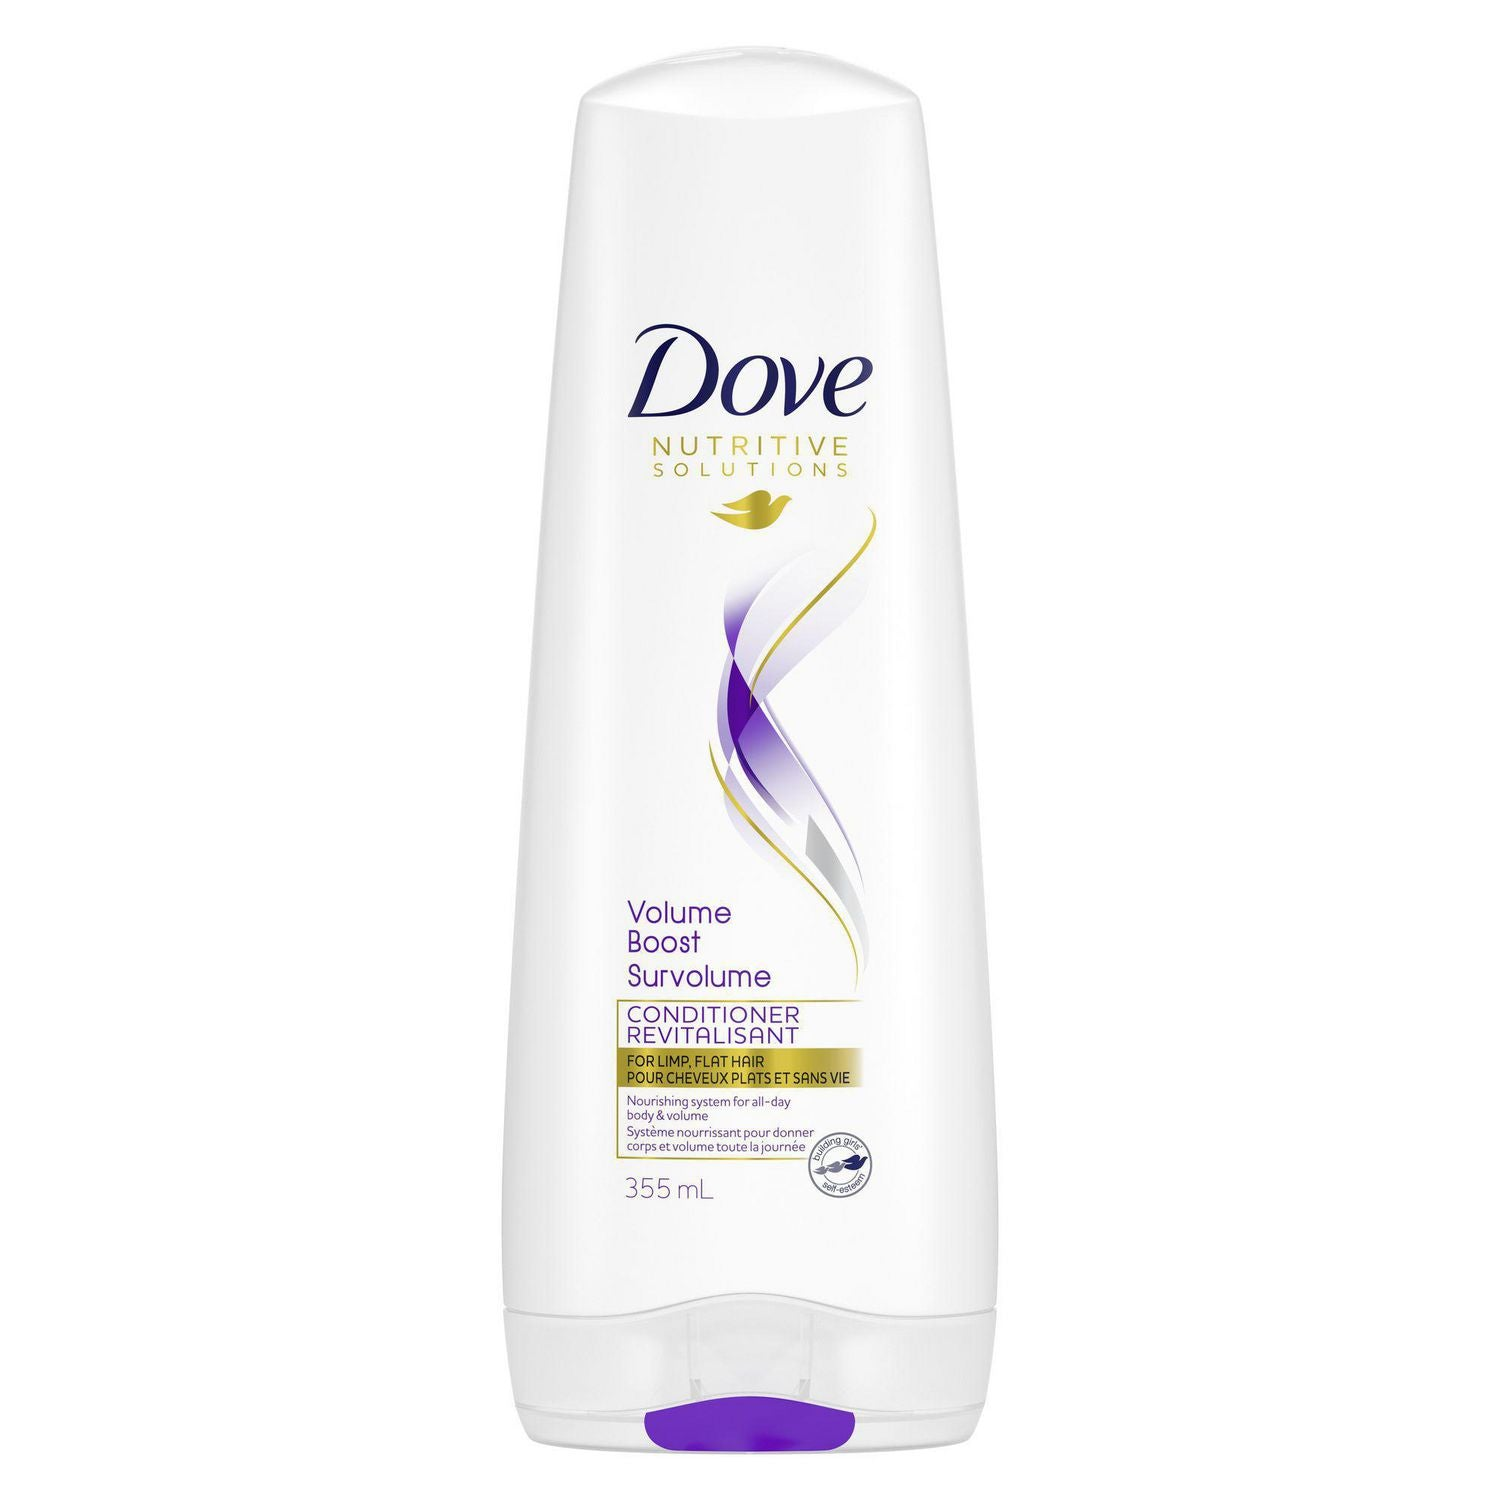 Dove Nutritive Solutions Volume Boost Conditioner 355mL